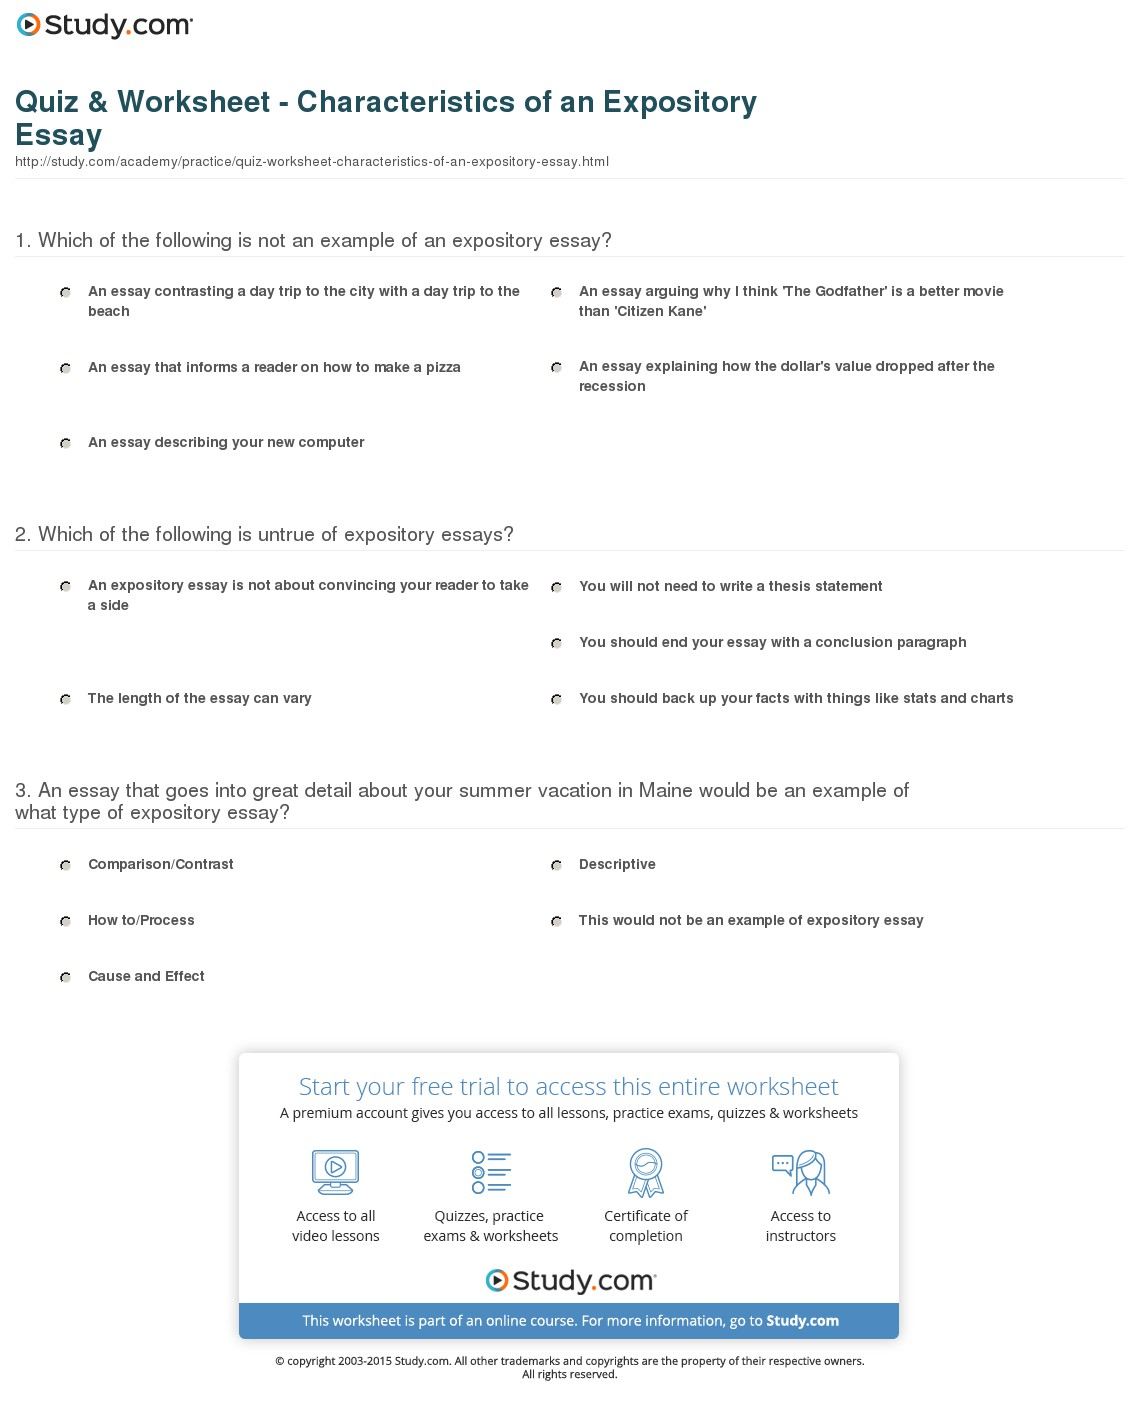 009 Essay Example Expository Essays Quiz Worksheet Characteristics Of Stunning Just The Facts Topics Rubric 4th Grade Full